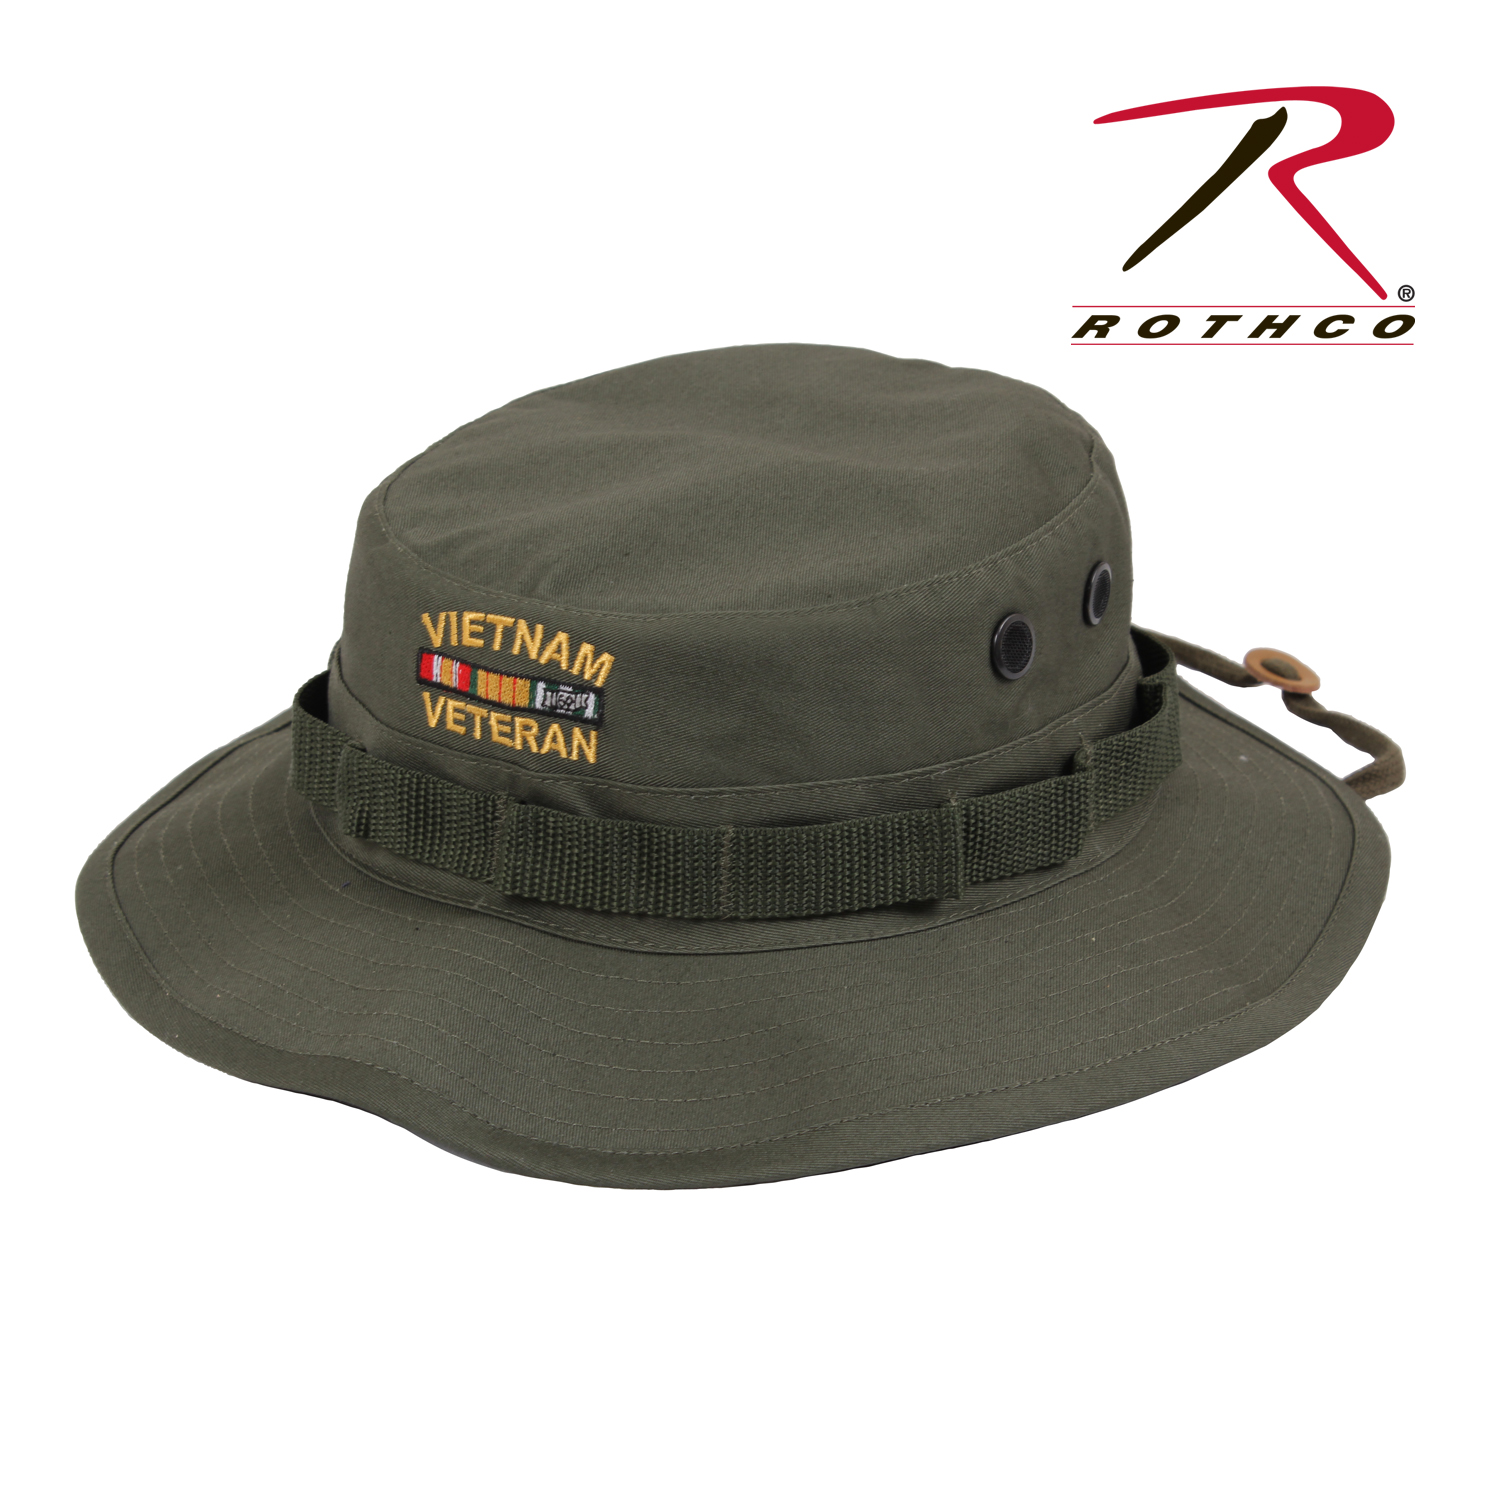 Details about Rothco 5911 Vietnam Veteran Boonie Hat - Olive Drab dae35eaea84